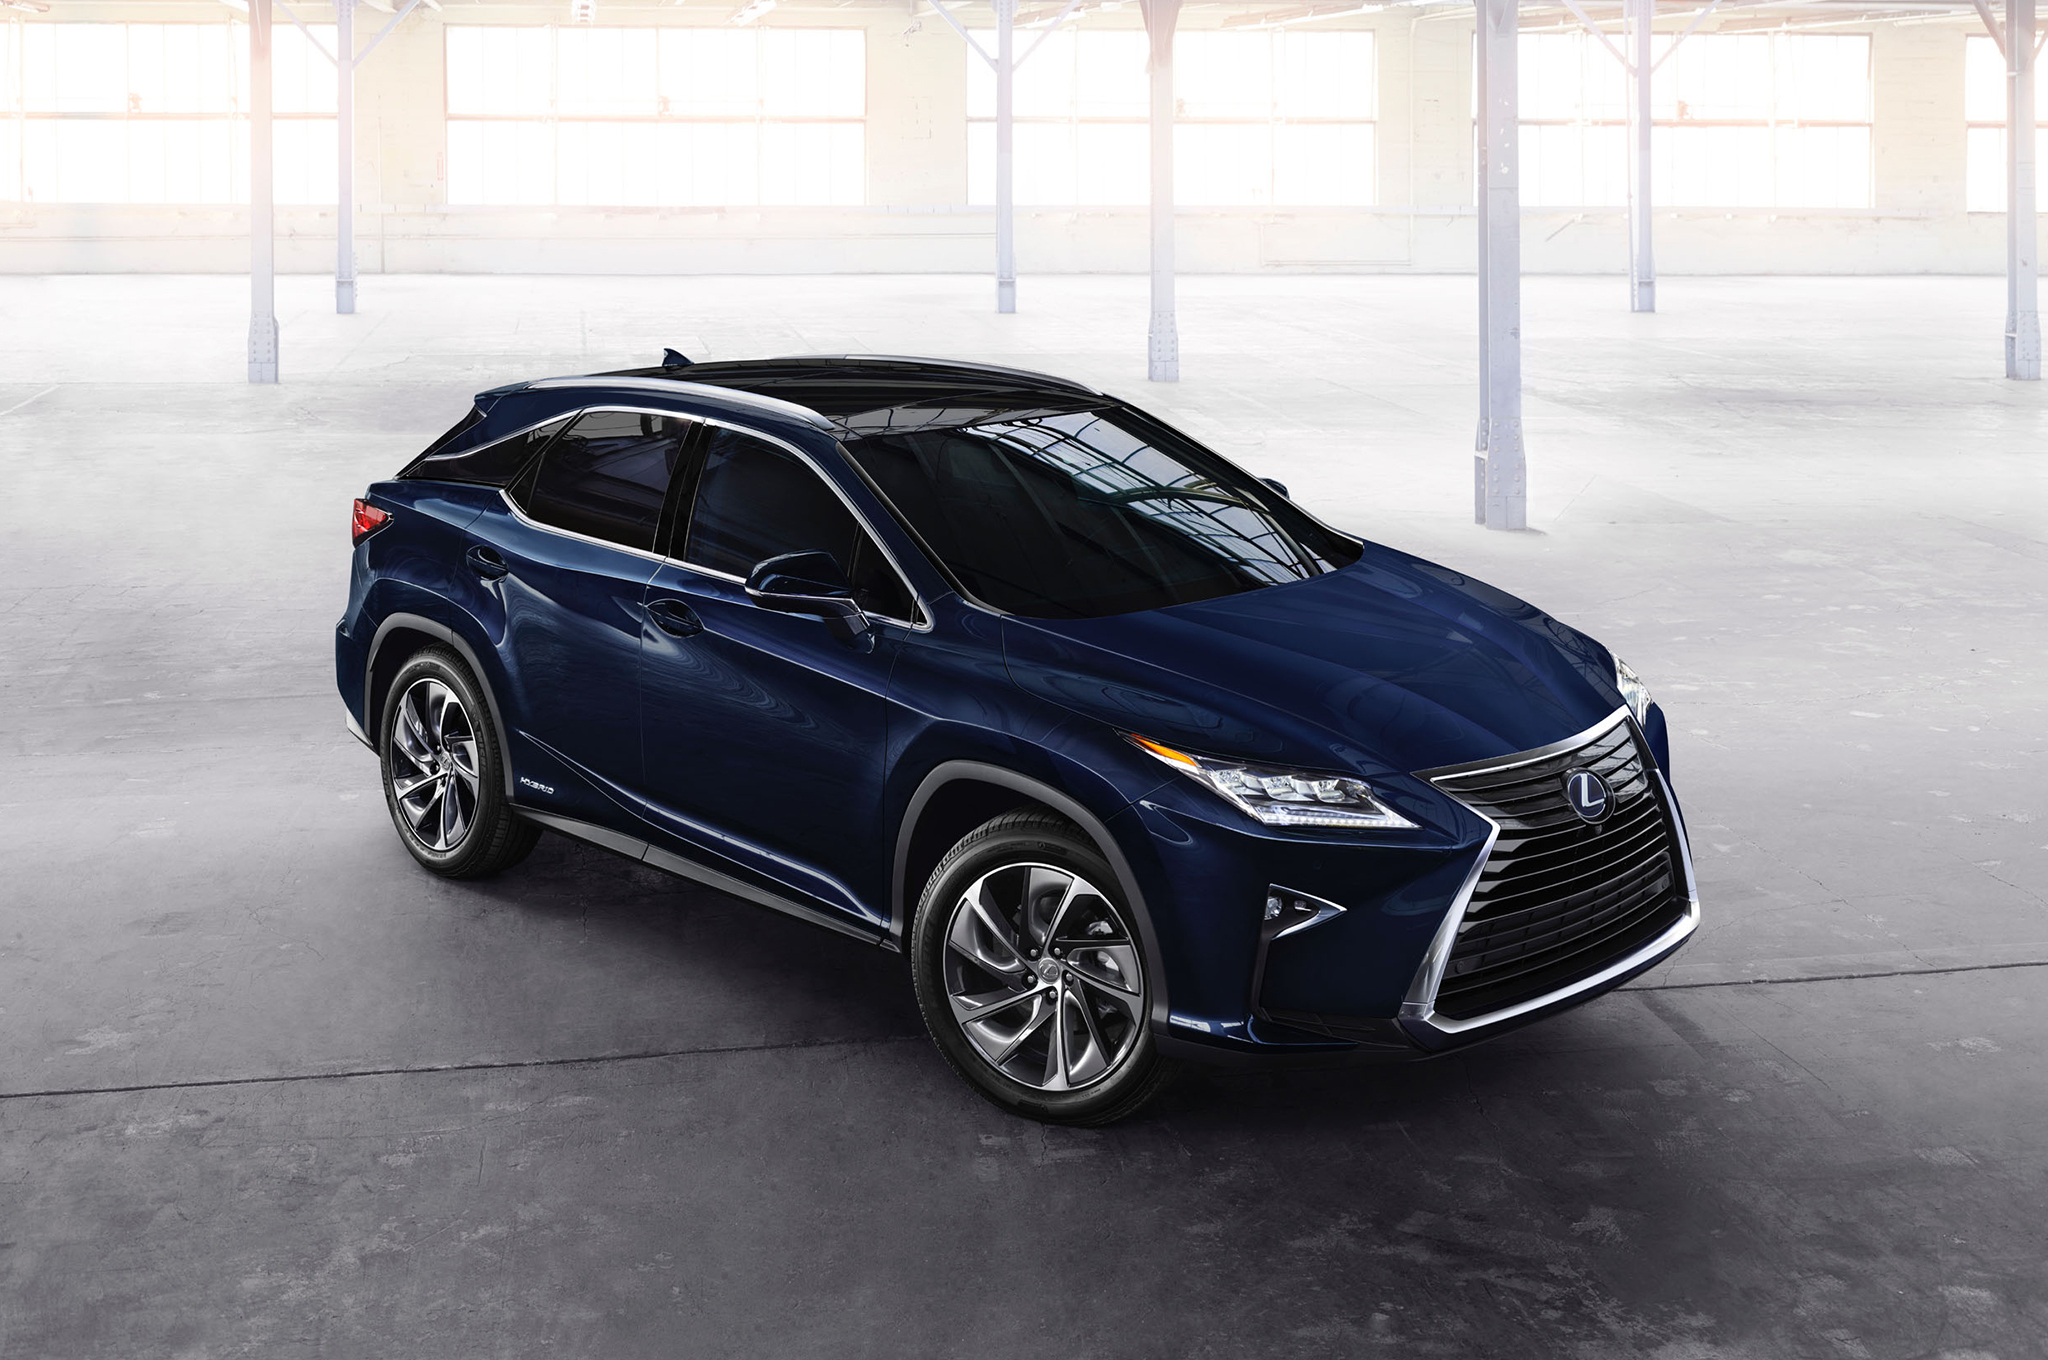 https://enthusiastnetwork.s3.amazonaws.com/uploads/sites/5/2015/08/2016-lexus-rx-450h-front-three-quarters-02.jpg?impolicy=entryimage